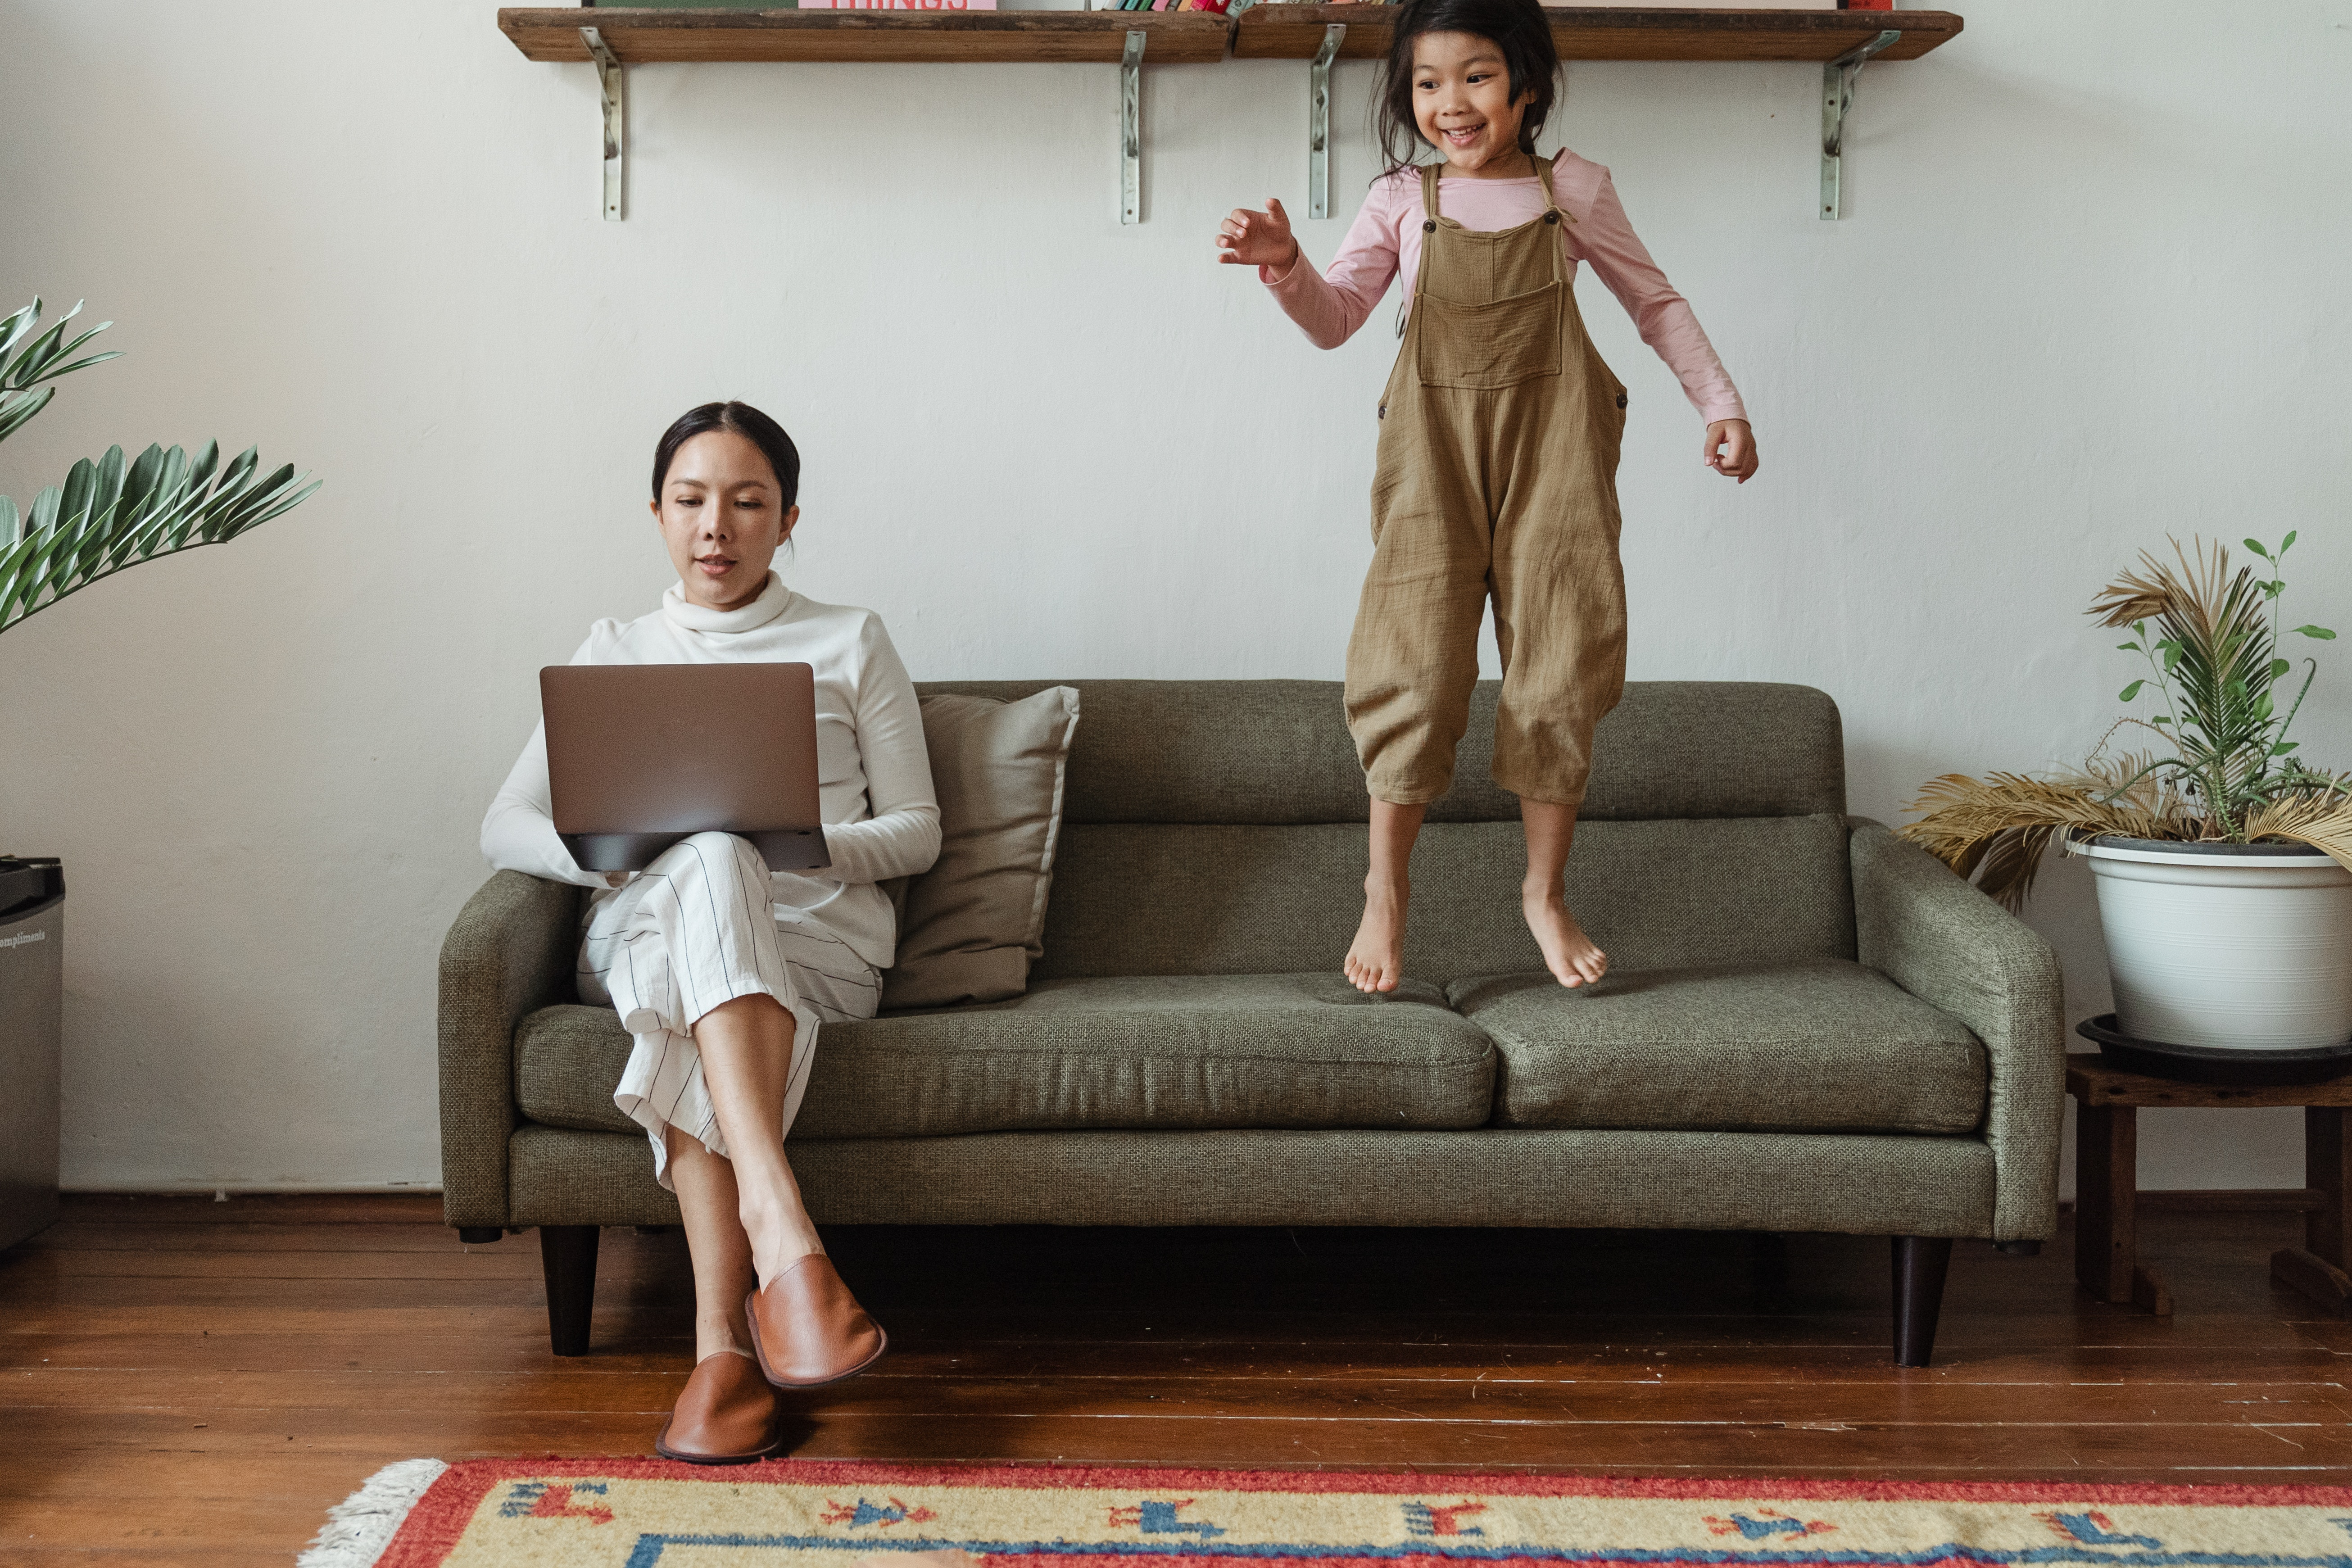 child jumping on furniture